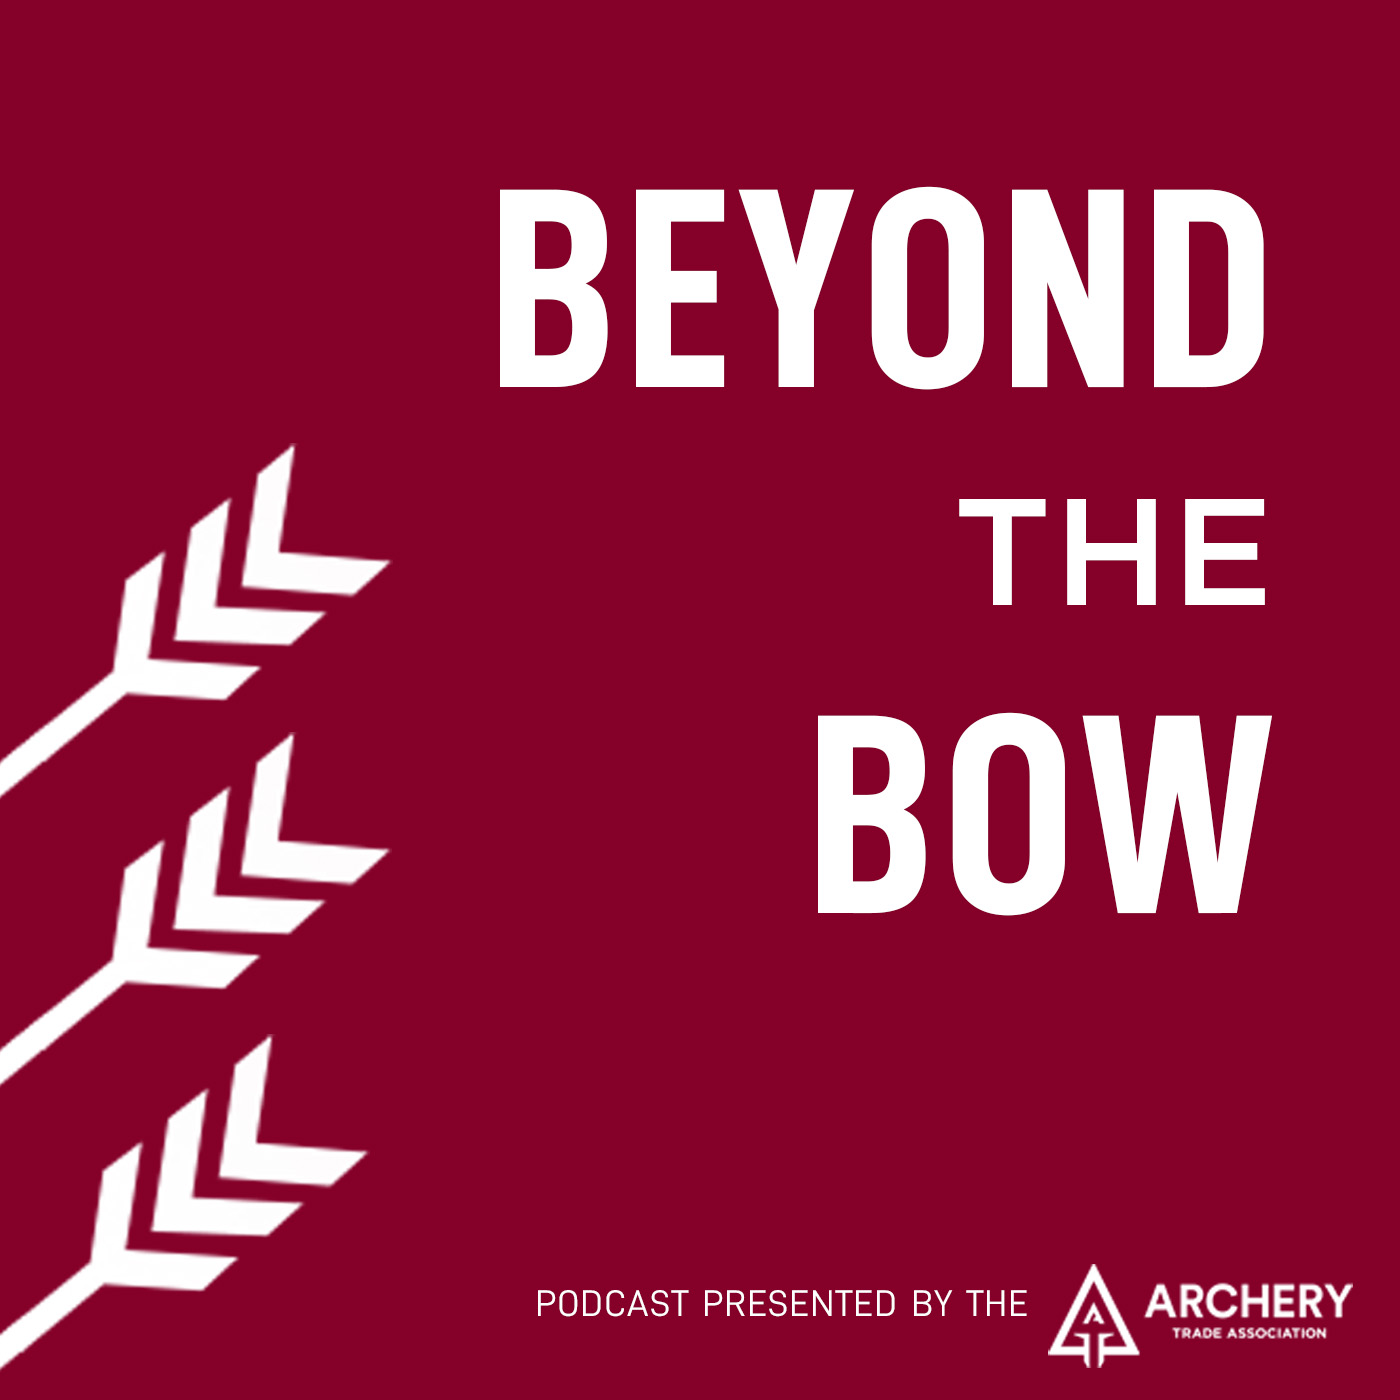 Beyond the Bow, Presented by ATA show art